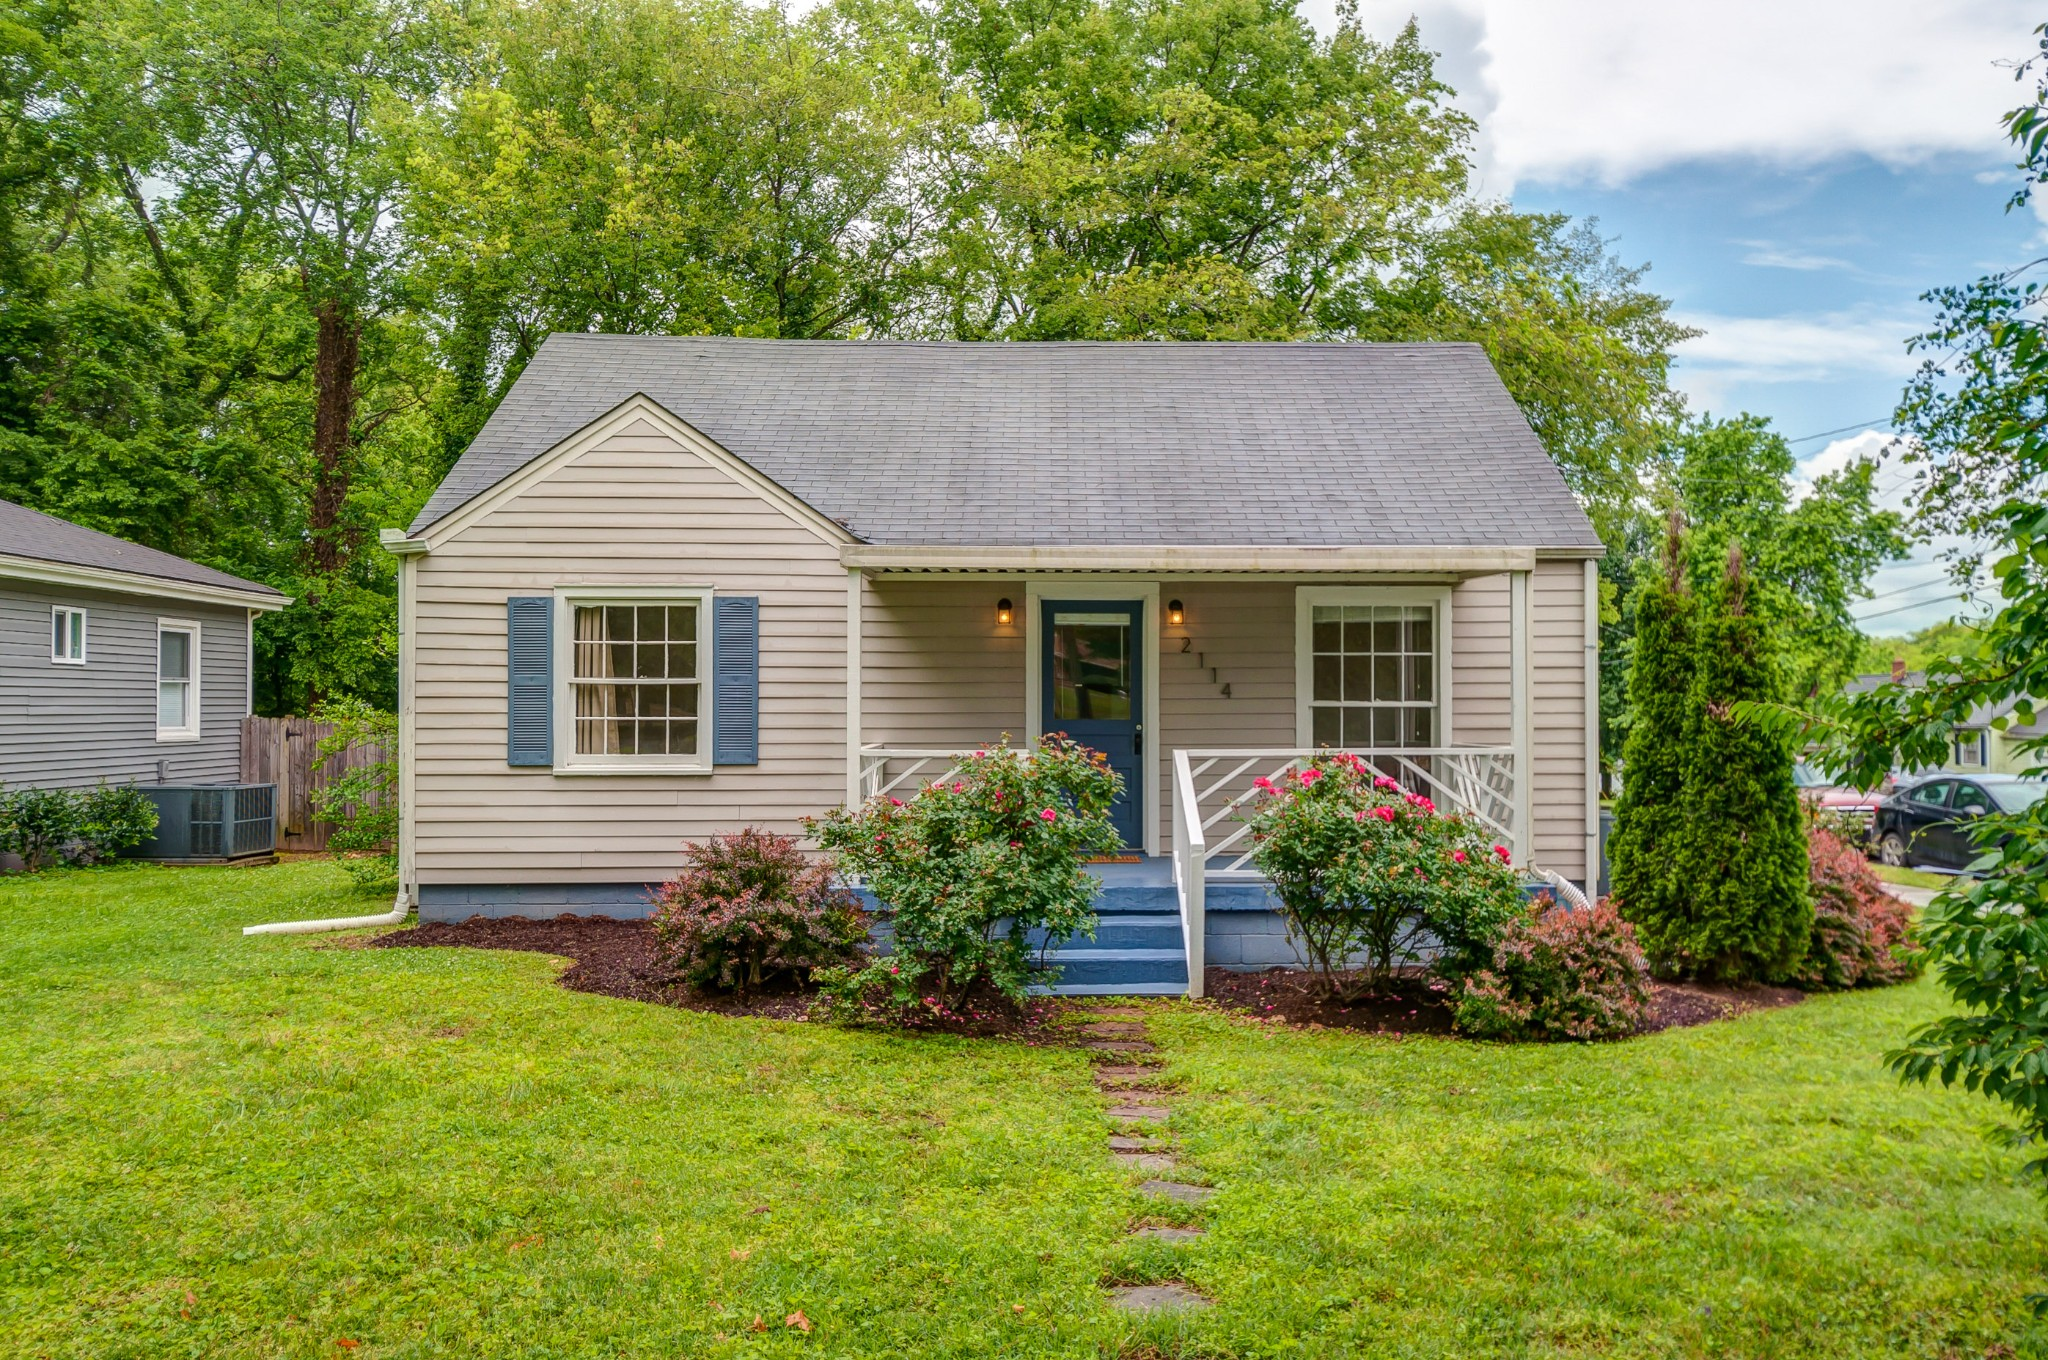 Wonderful move-in ready home with corner-lot, private off-street parking, & excellent usage of square footage.  Showings begin on 5/29 and offers presented on Monday 6/1. Upstairs ensuite bedroom has it's own mini-split a/c unit.